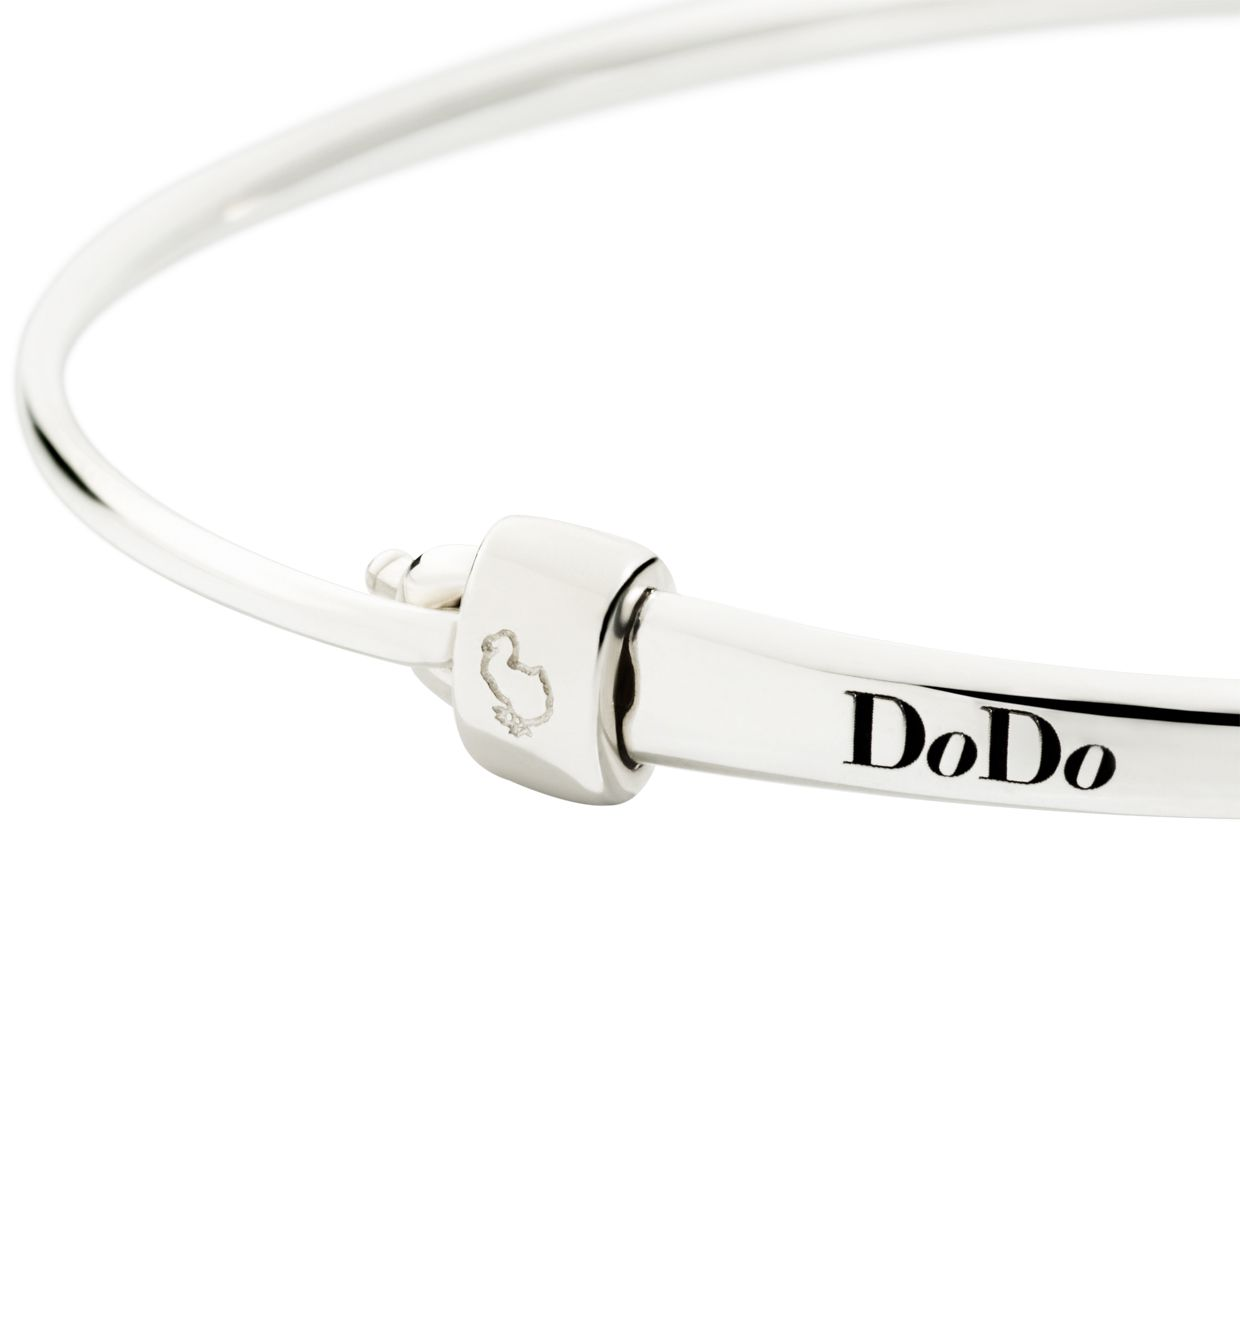 DoDo Bangle Stopper in Silver - Orsini Jewellers NZ